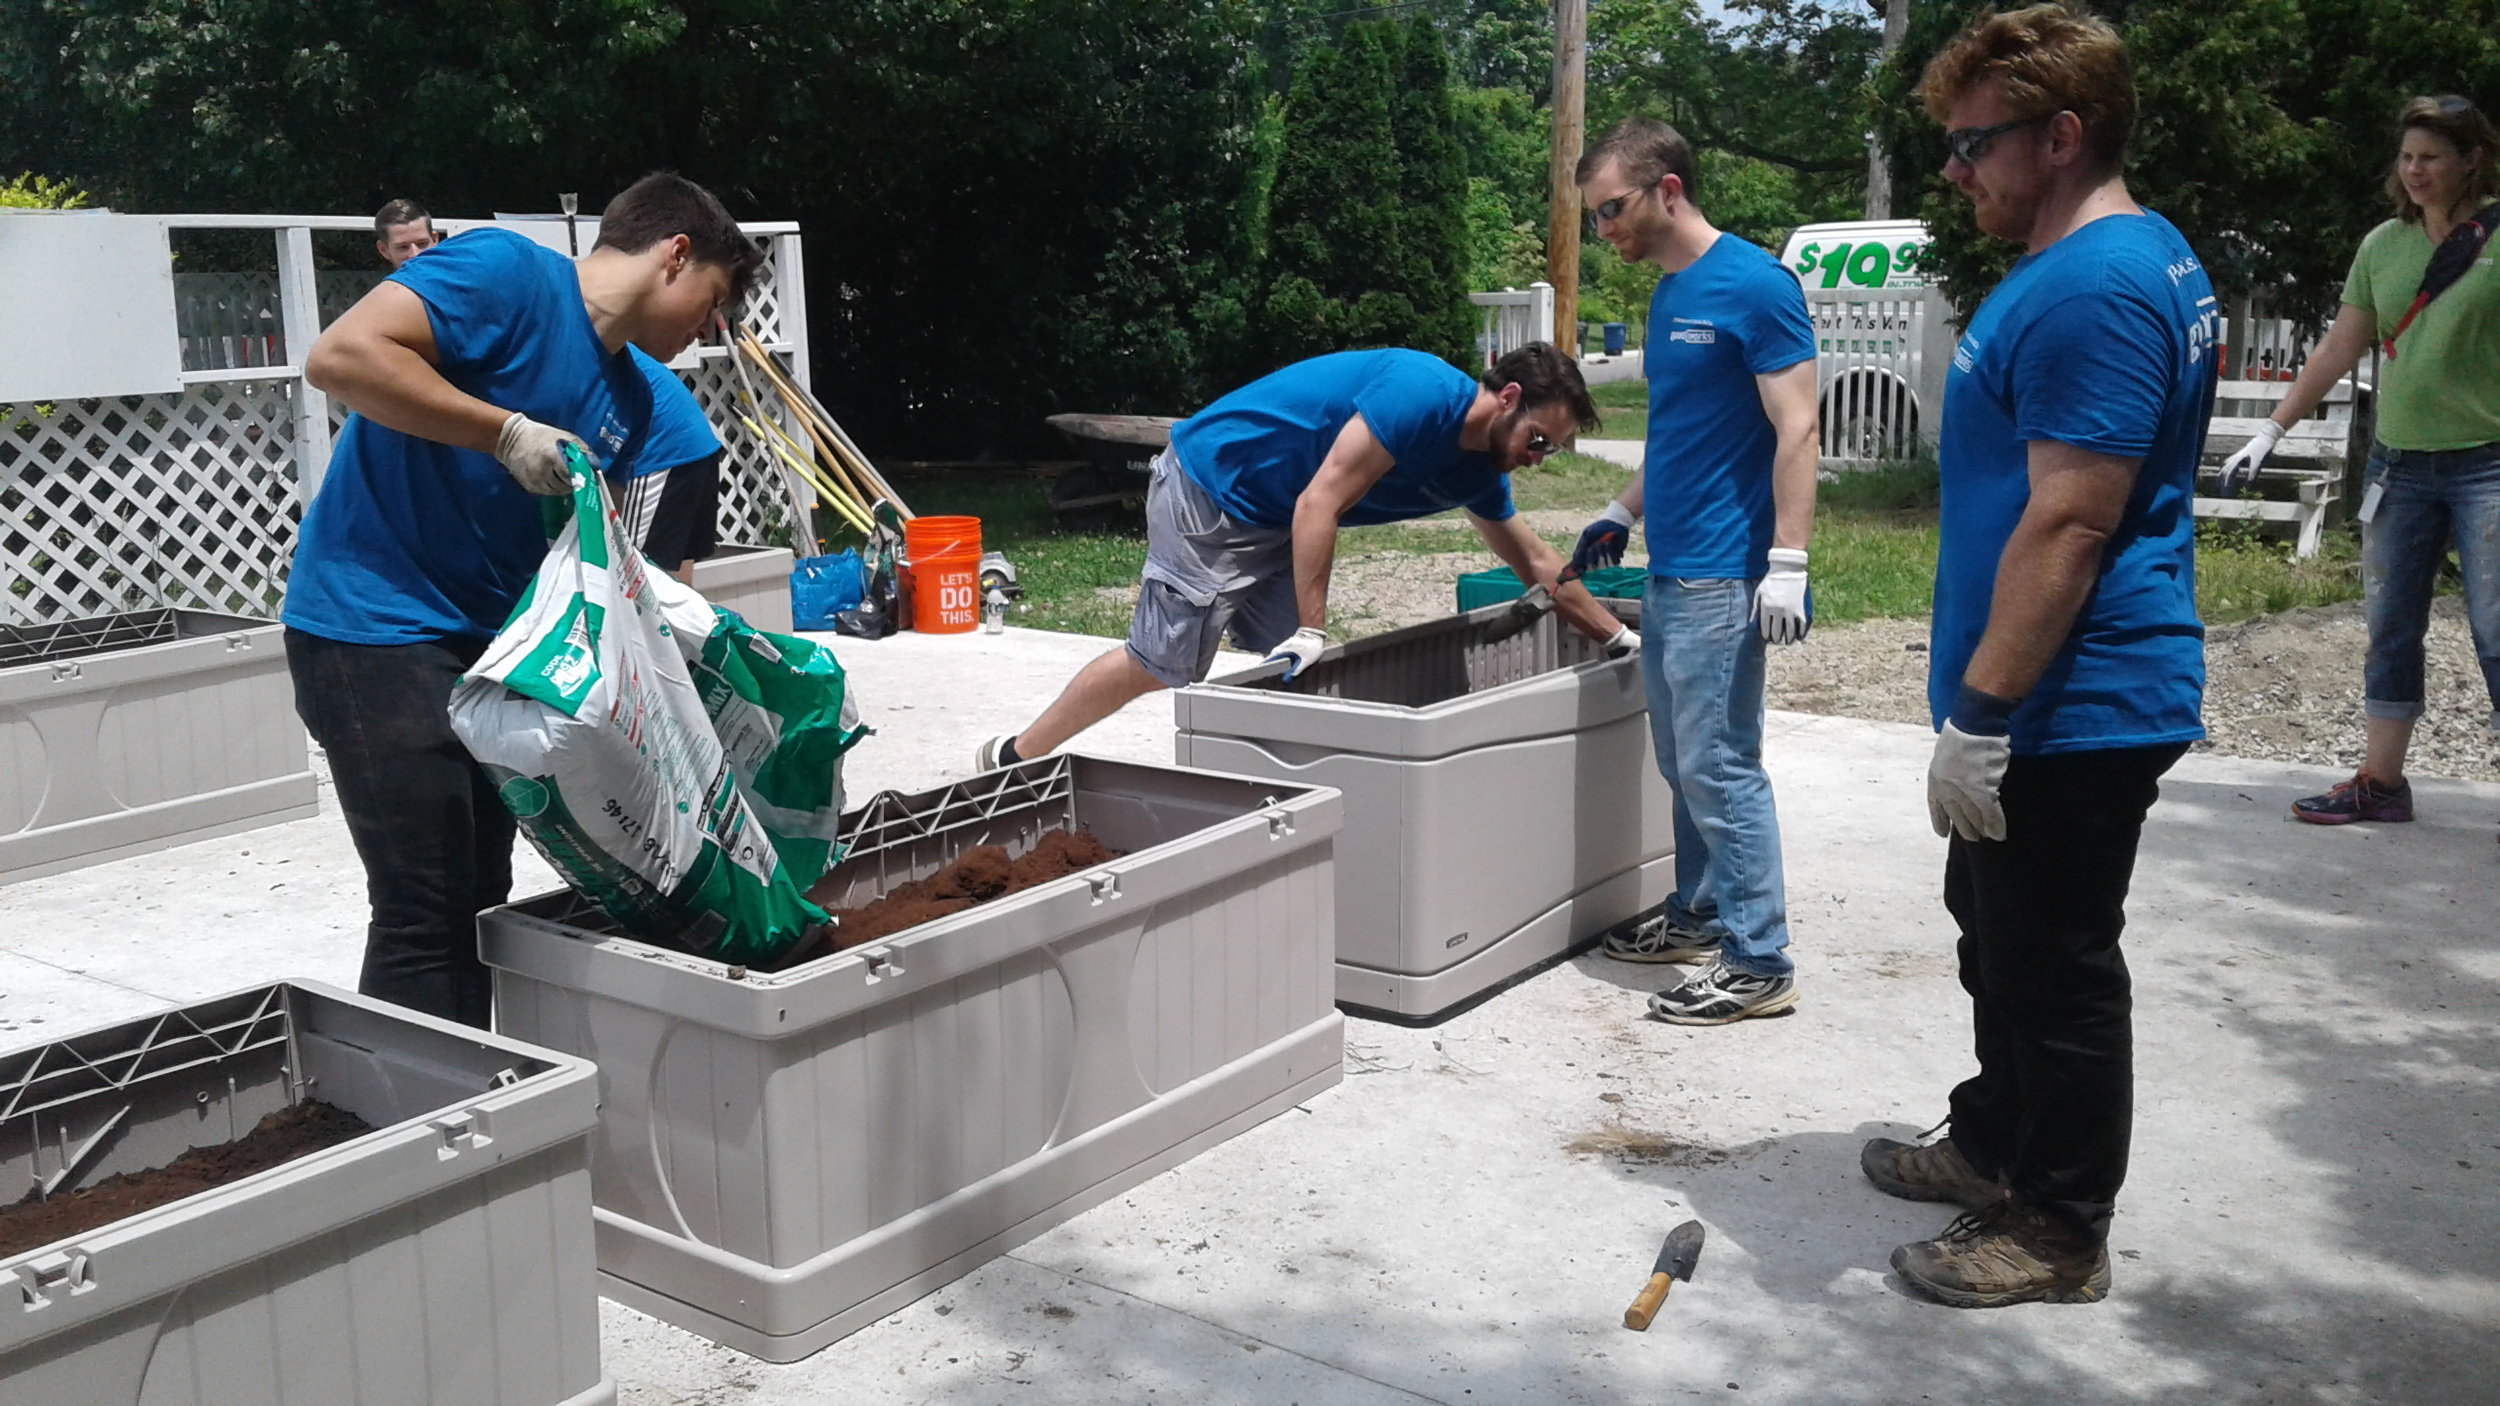 J.P. Morgan Chase employees building flower beds.